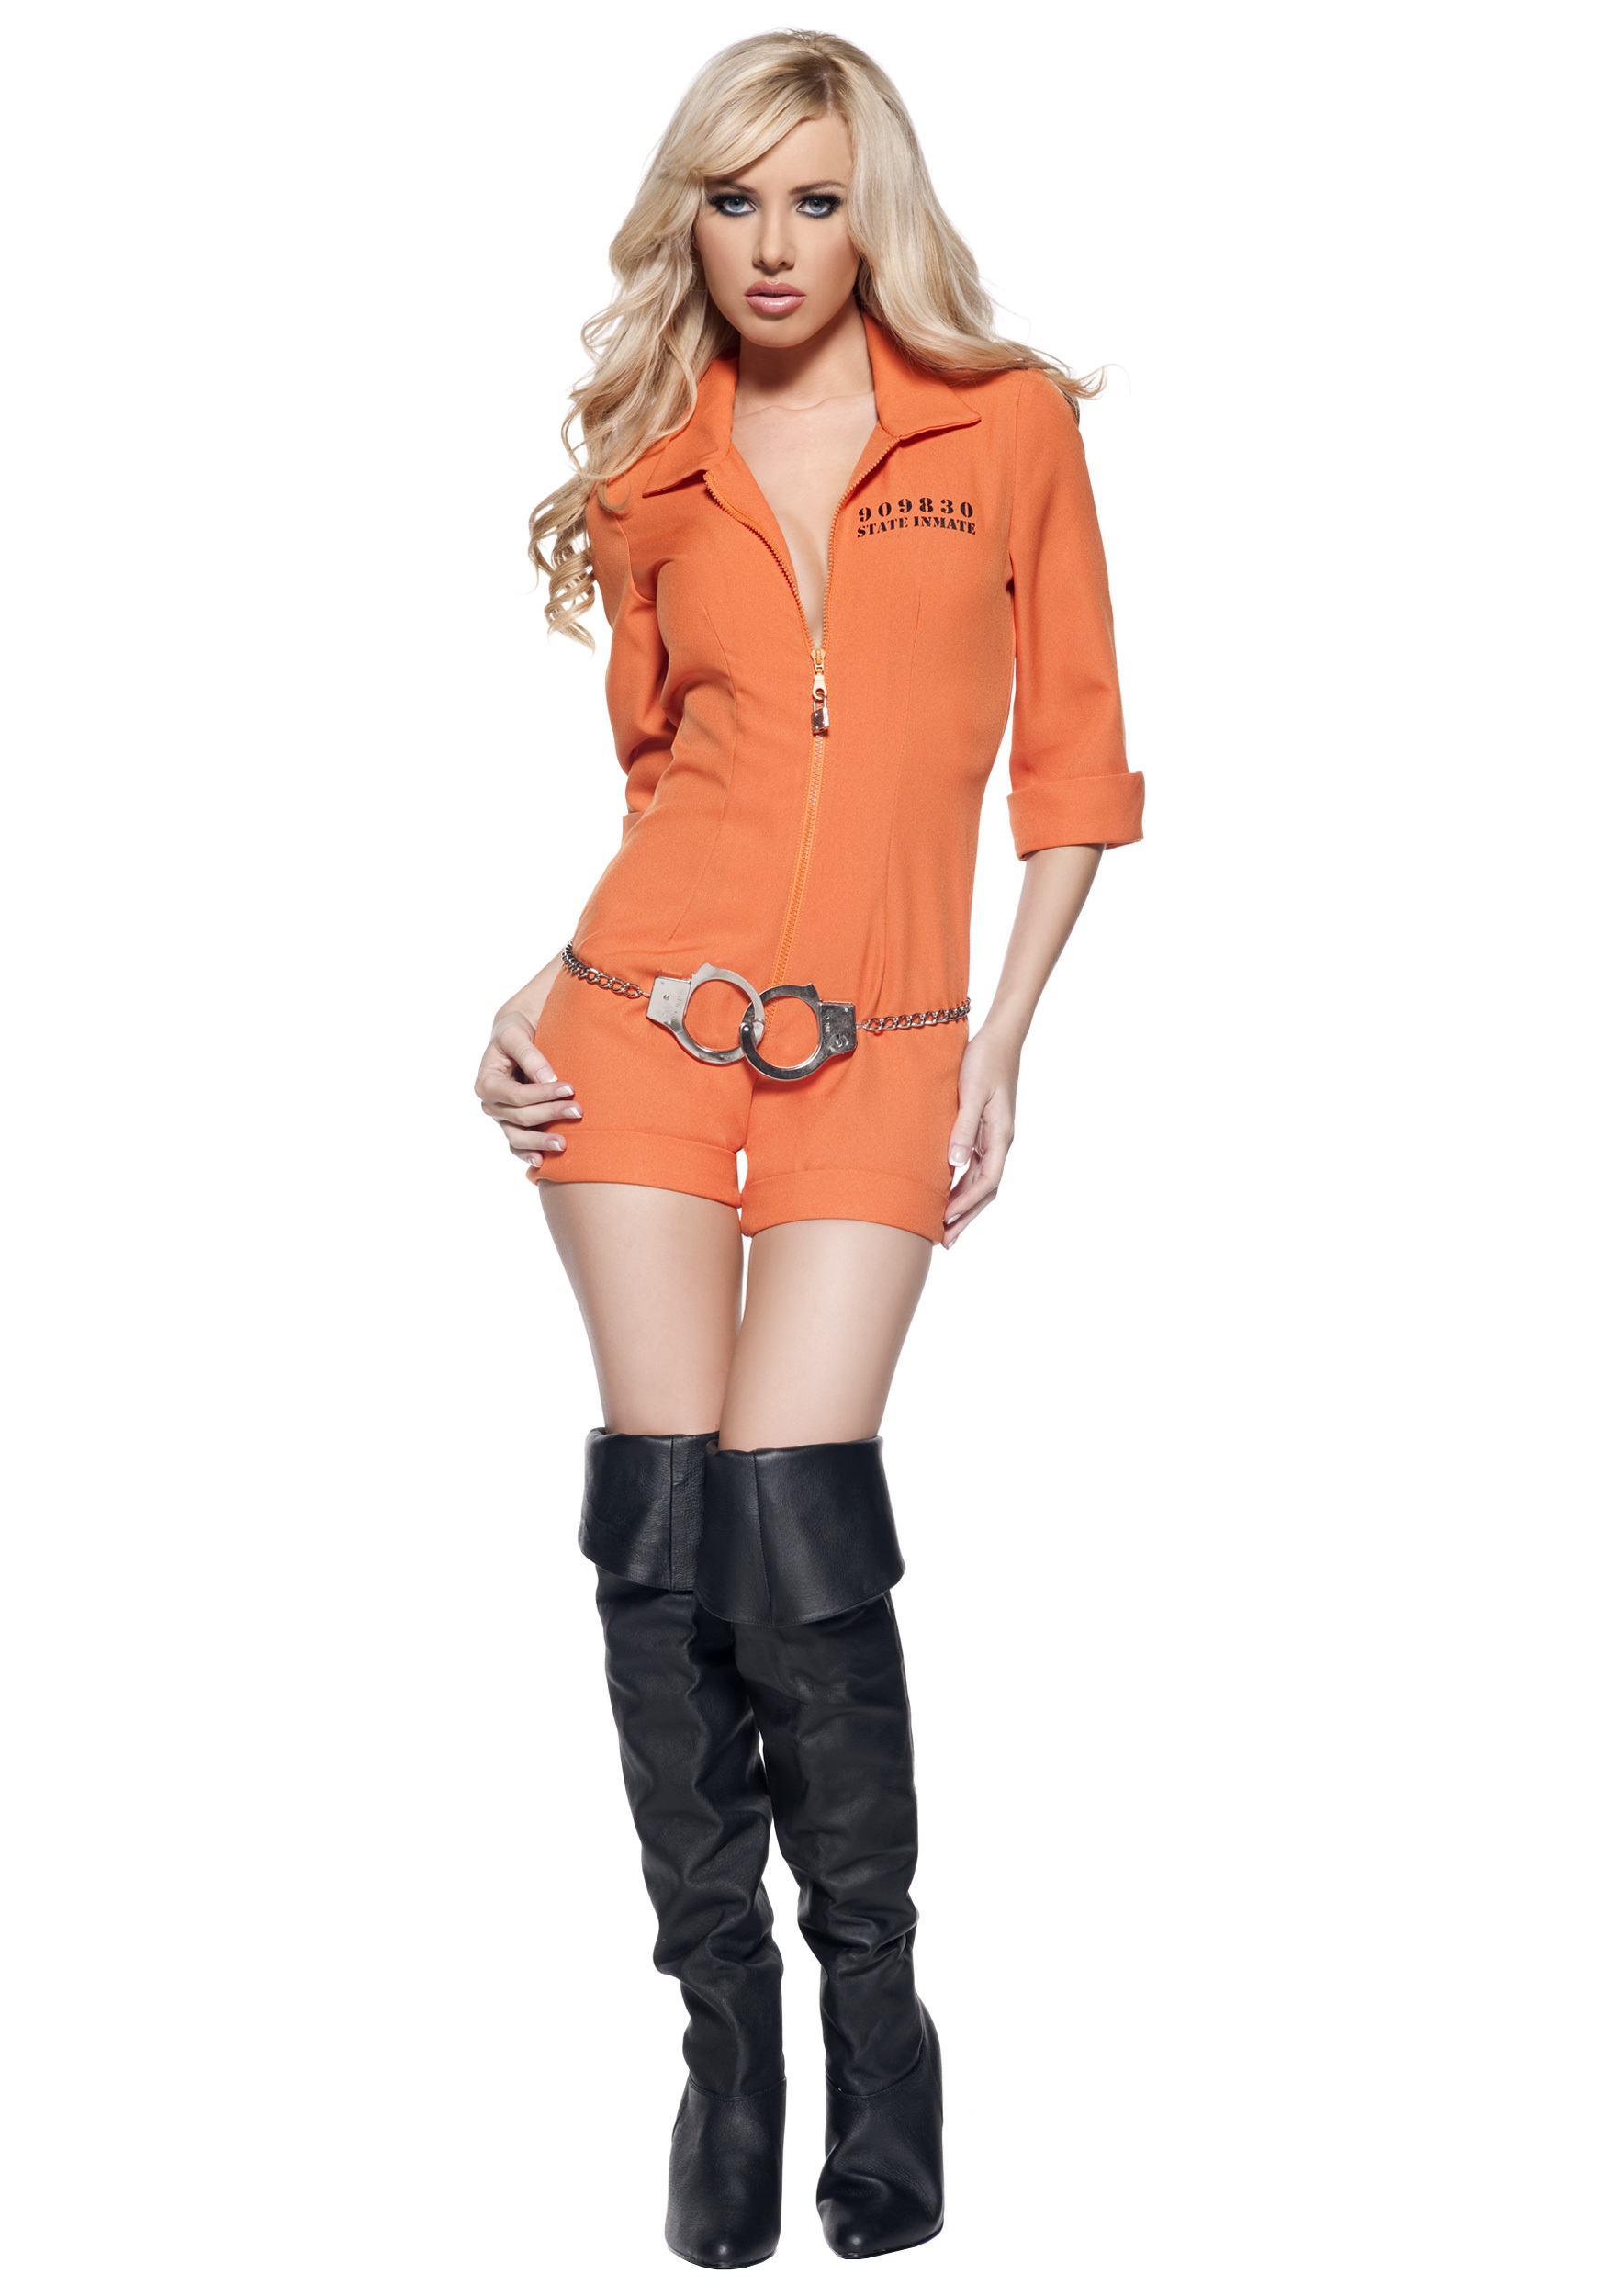 Ladies Inmate Jumpsuit  sc 1 st  Halloween Costume : cop and inmate costumes  - Germanpascual.Com